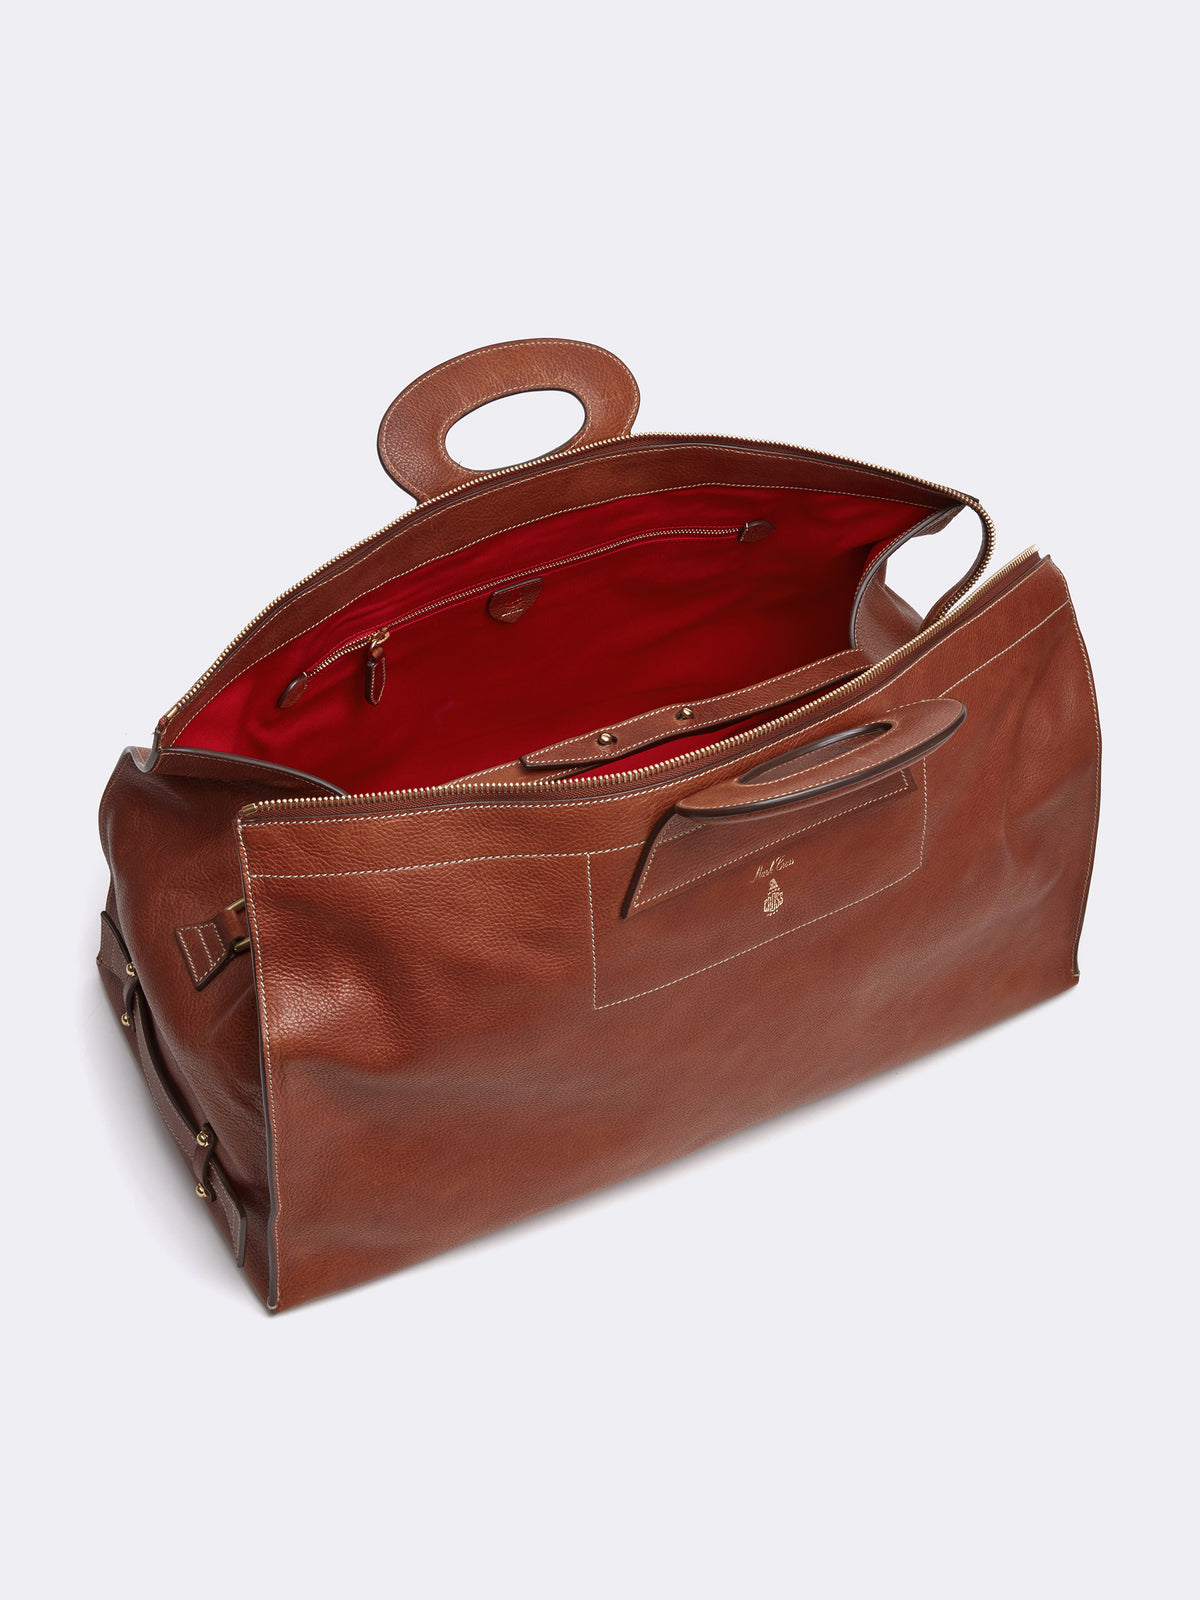 Mark Cross Vintage Leather Duffle Bag Calf Luggage Interior